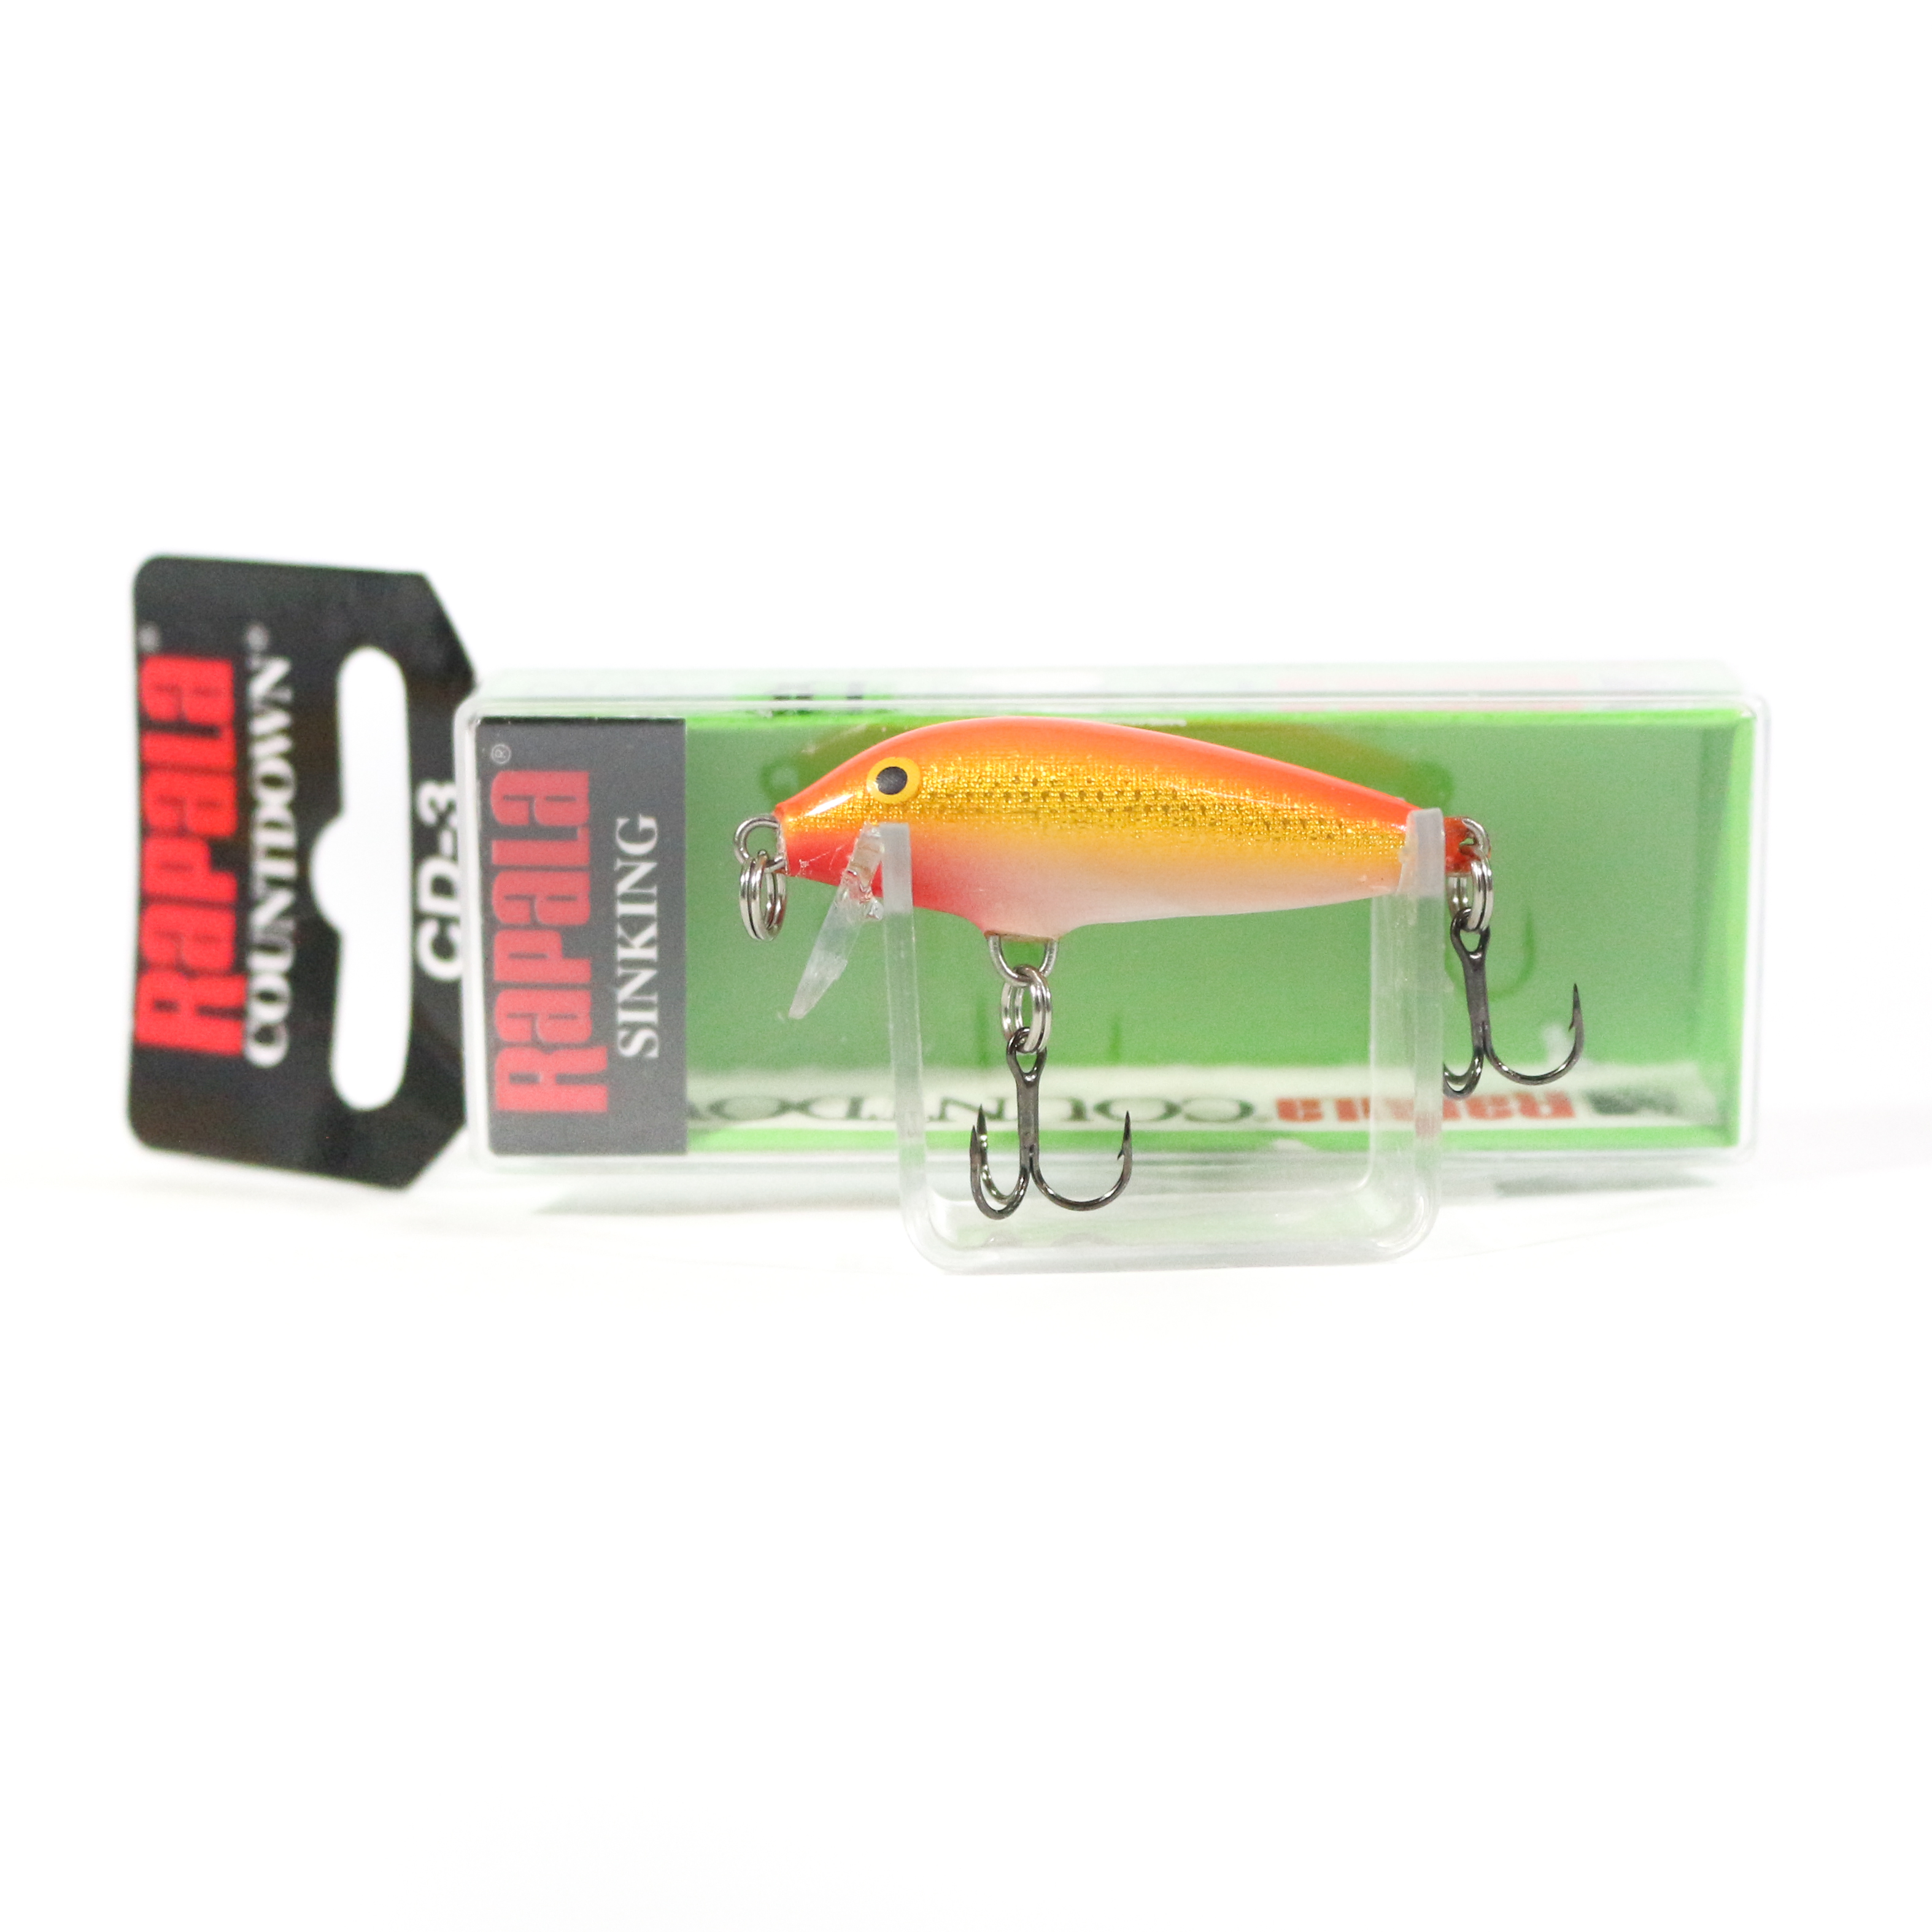 Rapala Countdown Sinking Lure CD03/GFR (1869)